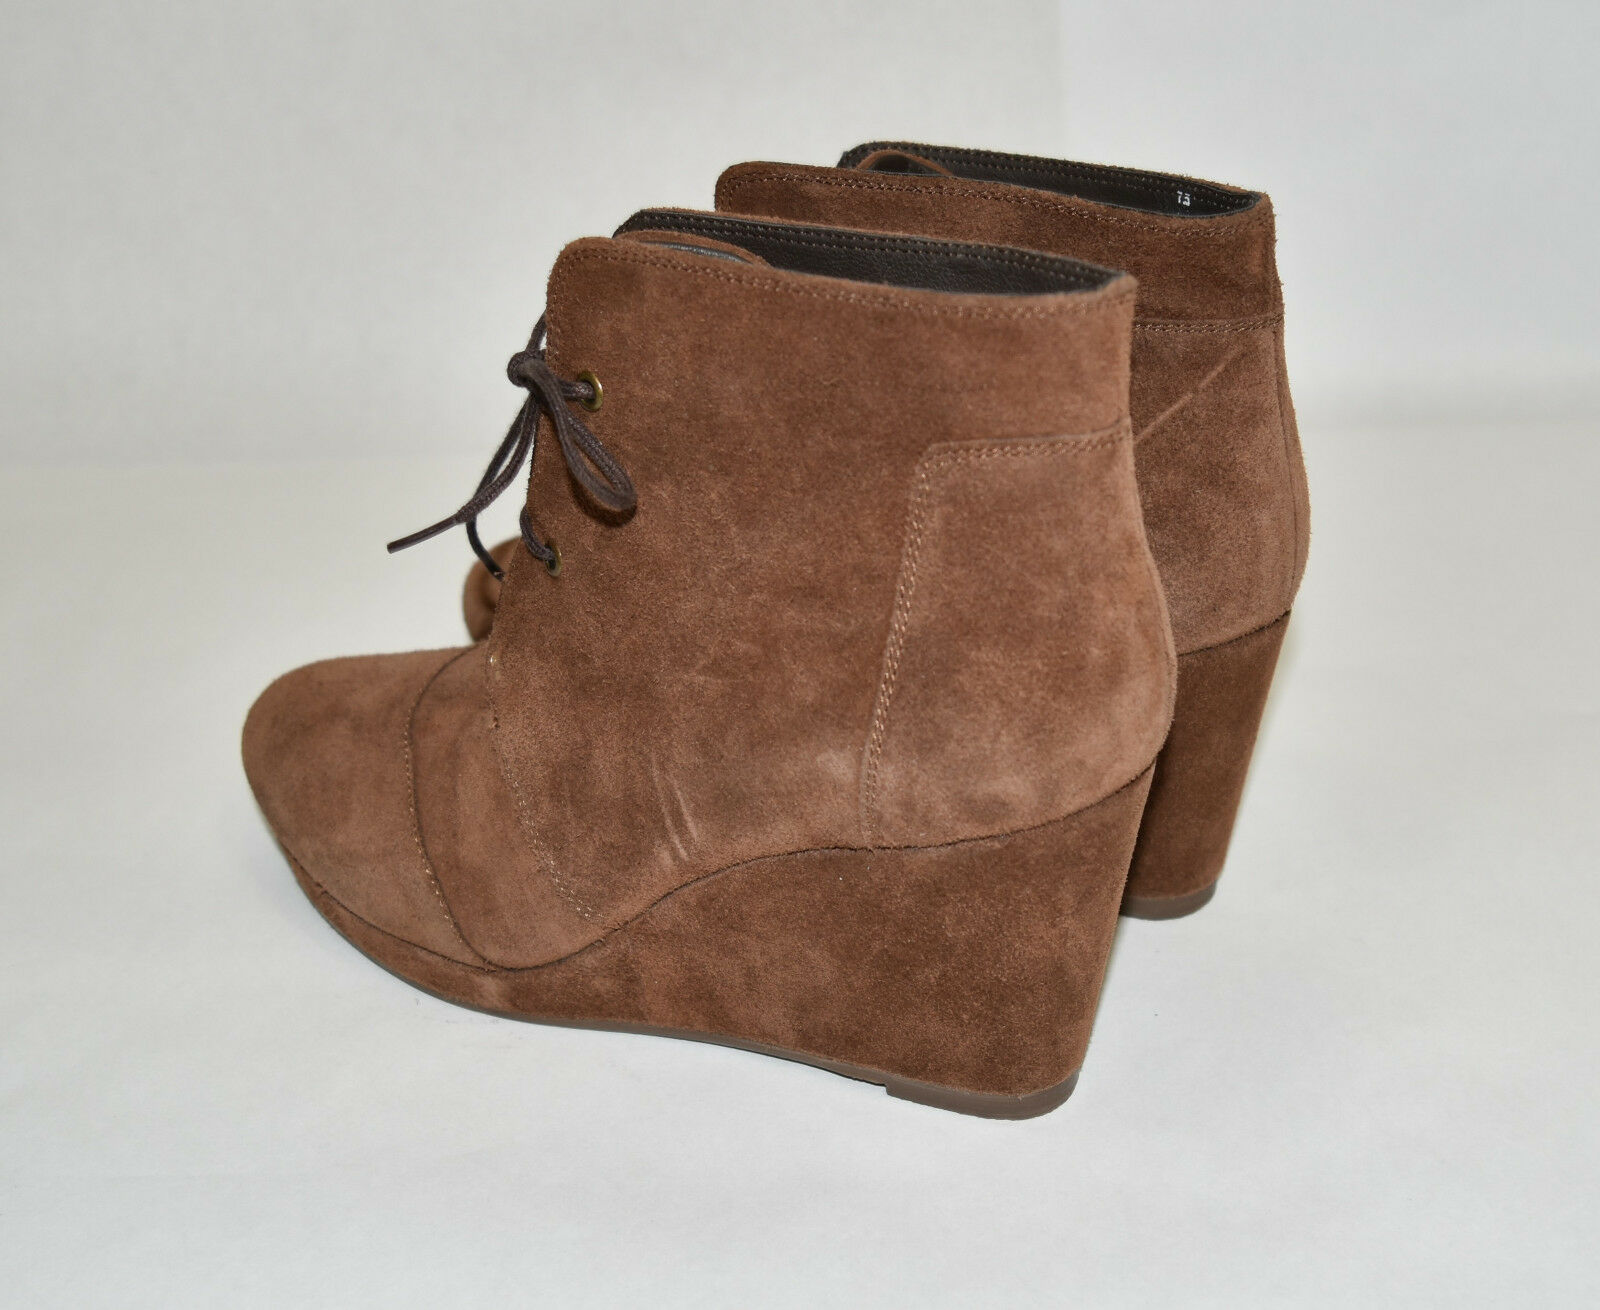 New! Blondo Paige Waterproof Wedge Suede Bootie Lace up Brown Suede Wedge Platform Size 7.5 faca2f